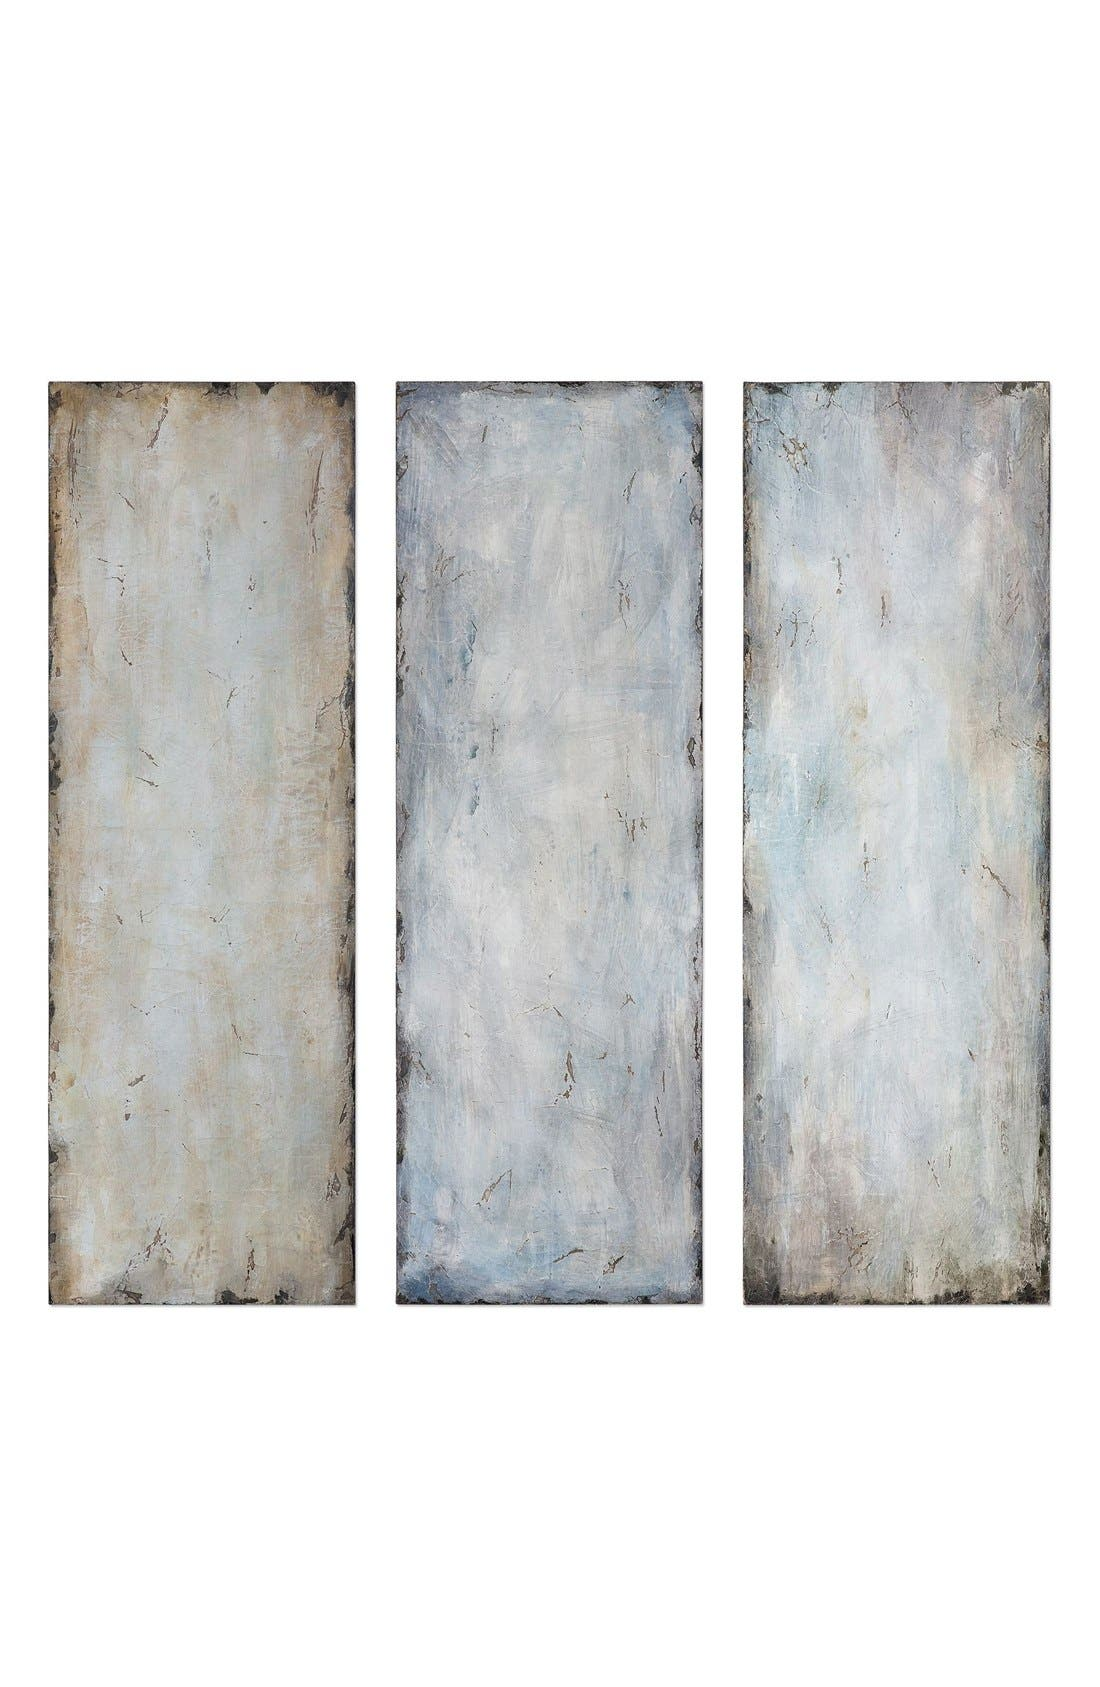 Alternate Image 1 Selected - Uttermost 'Textured Trio' Abstract Wall Art (Set of 3)